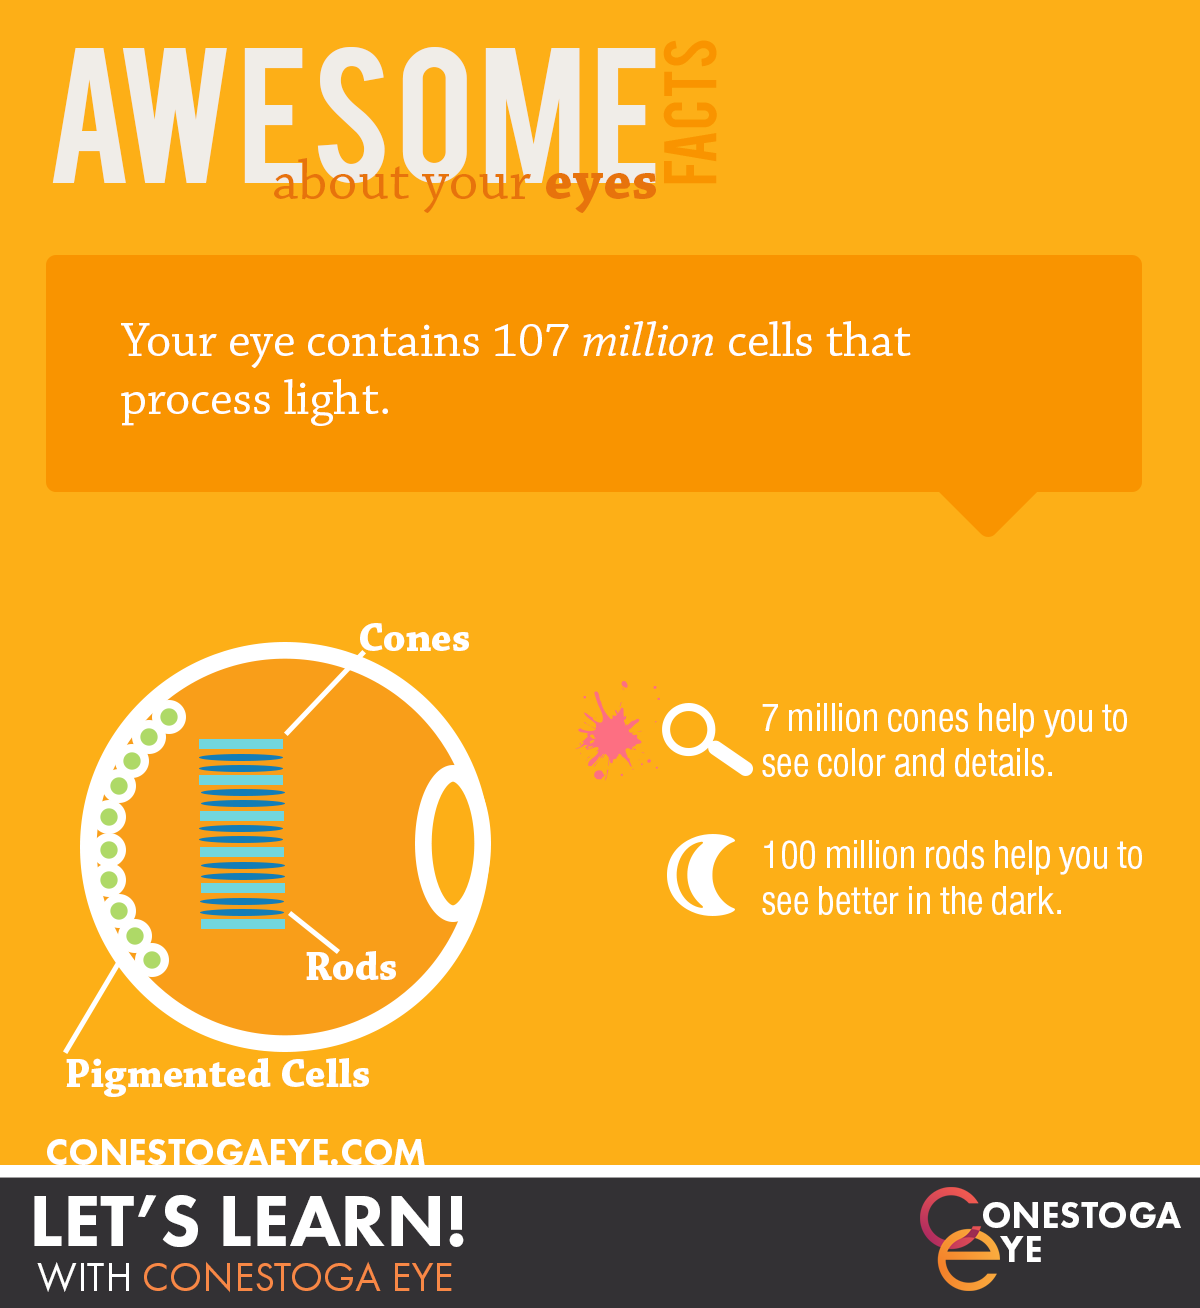 AwesomeFacts3